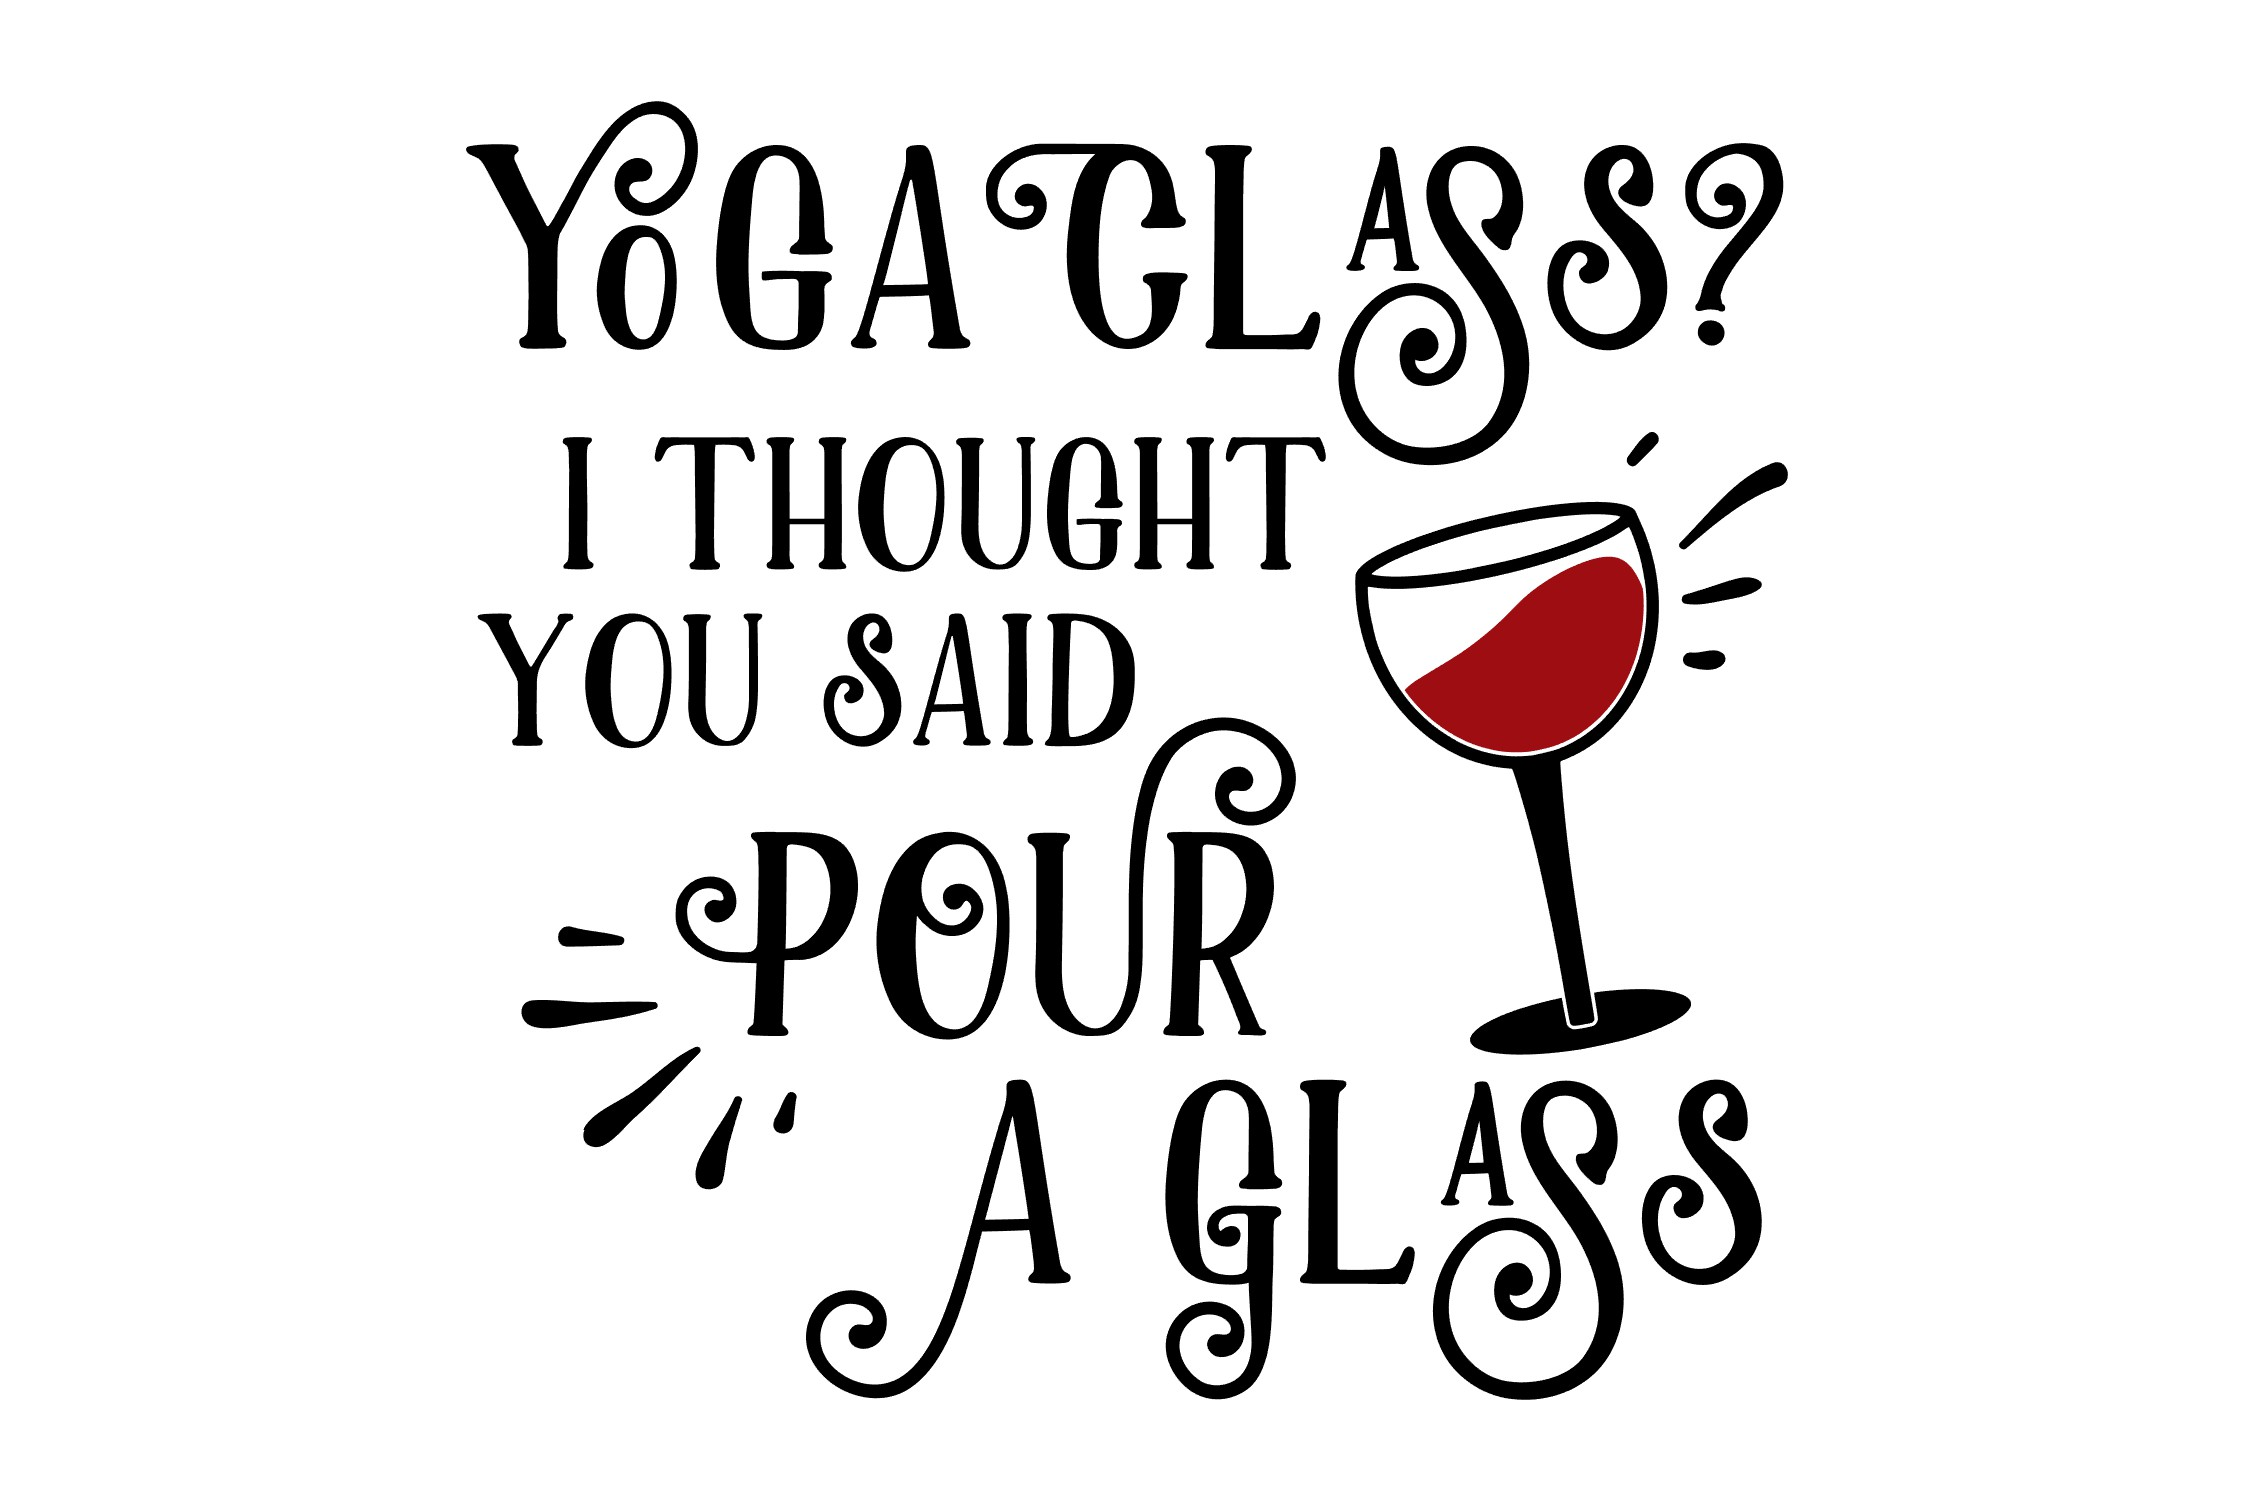 Yoga Class? I thought you said Pour a Glass - SVG PNG EPS example image 4